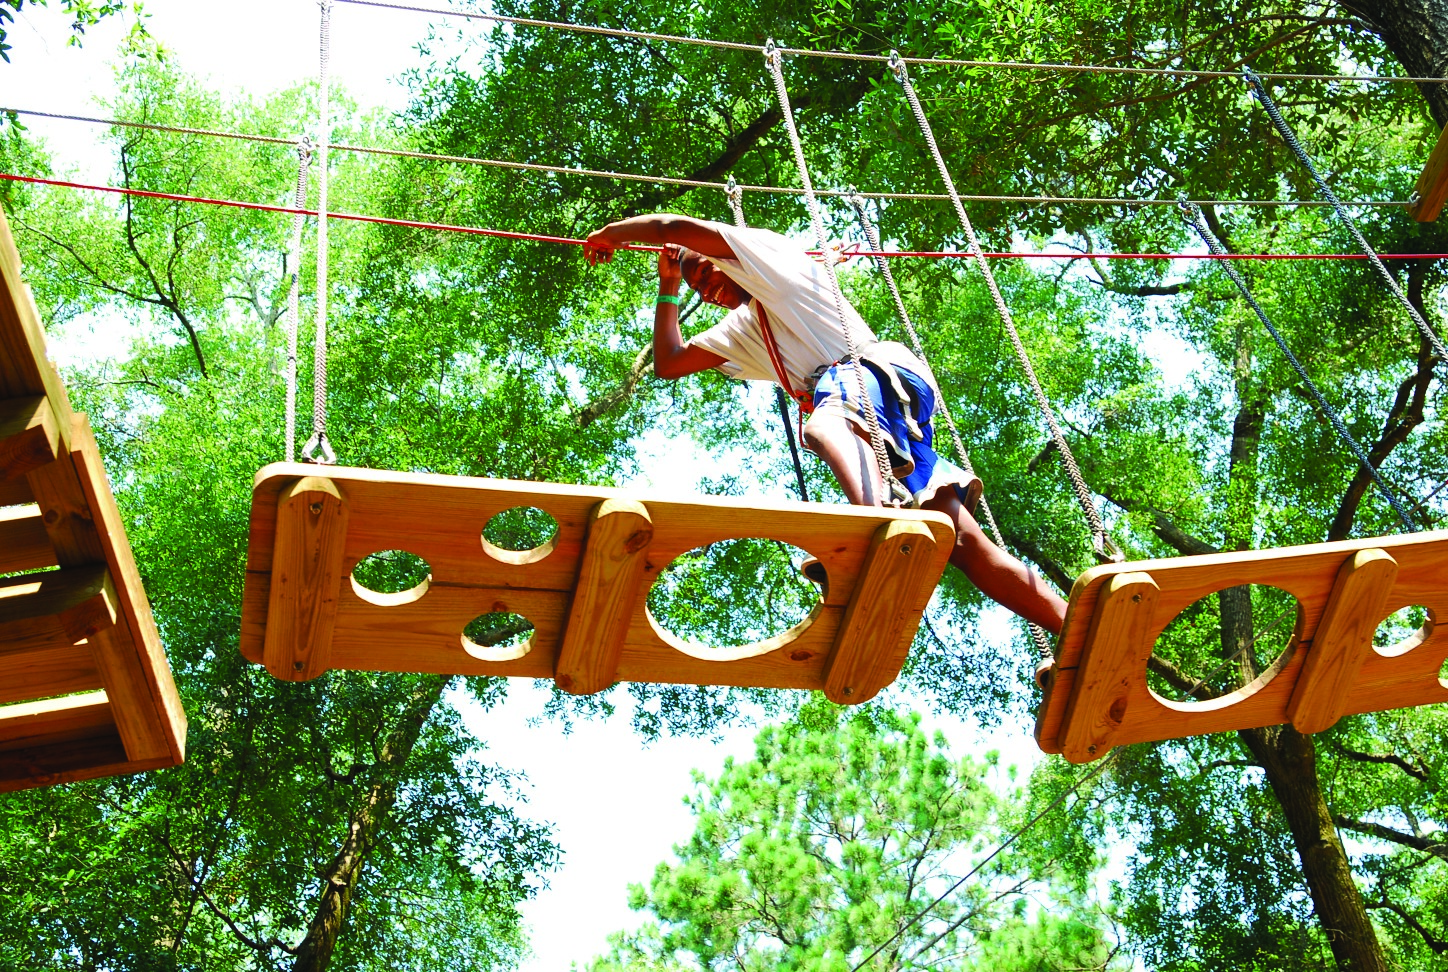 tallahassee museum zipline obstacle course